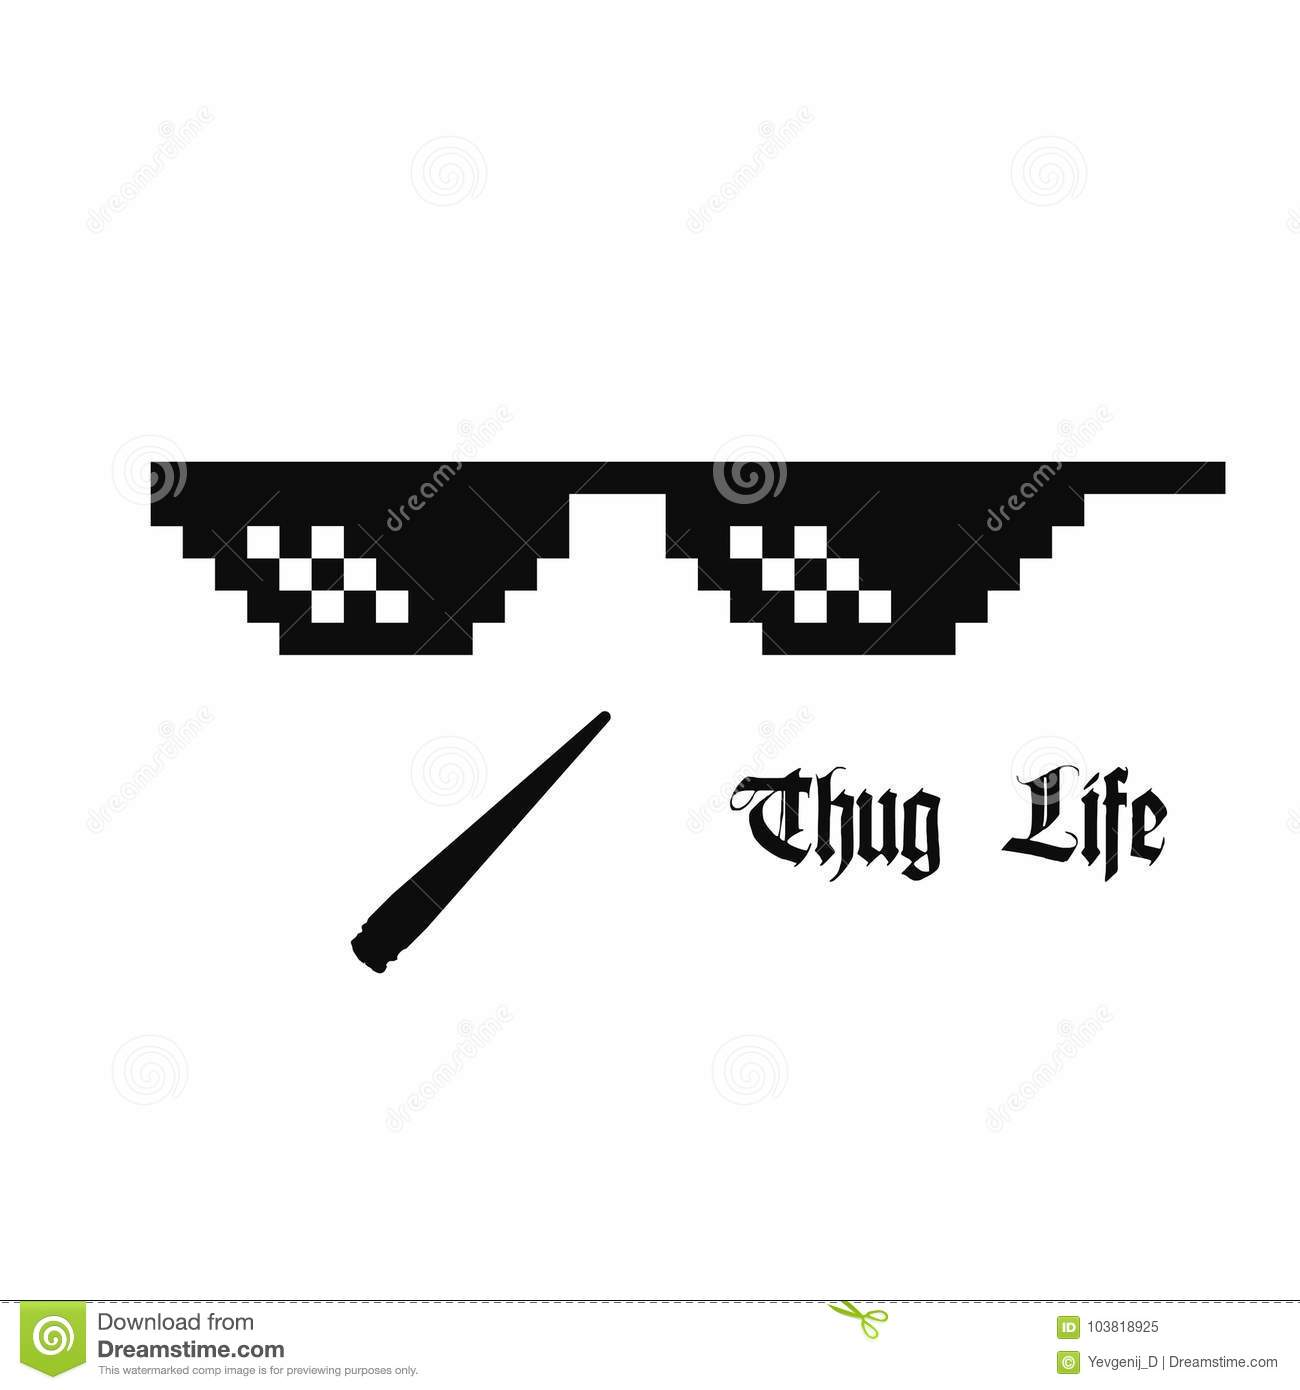 aa2b1b436 Thug life meme glasses with cannabis joint isolated on white background.